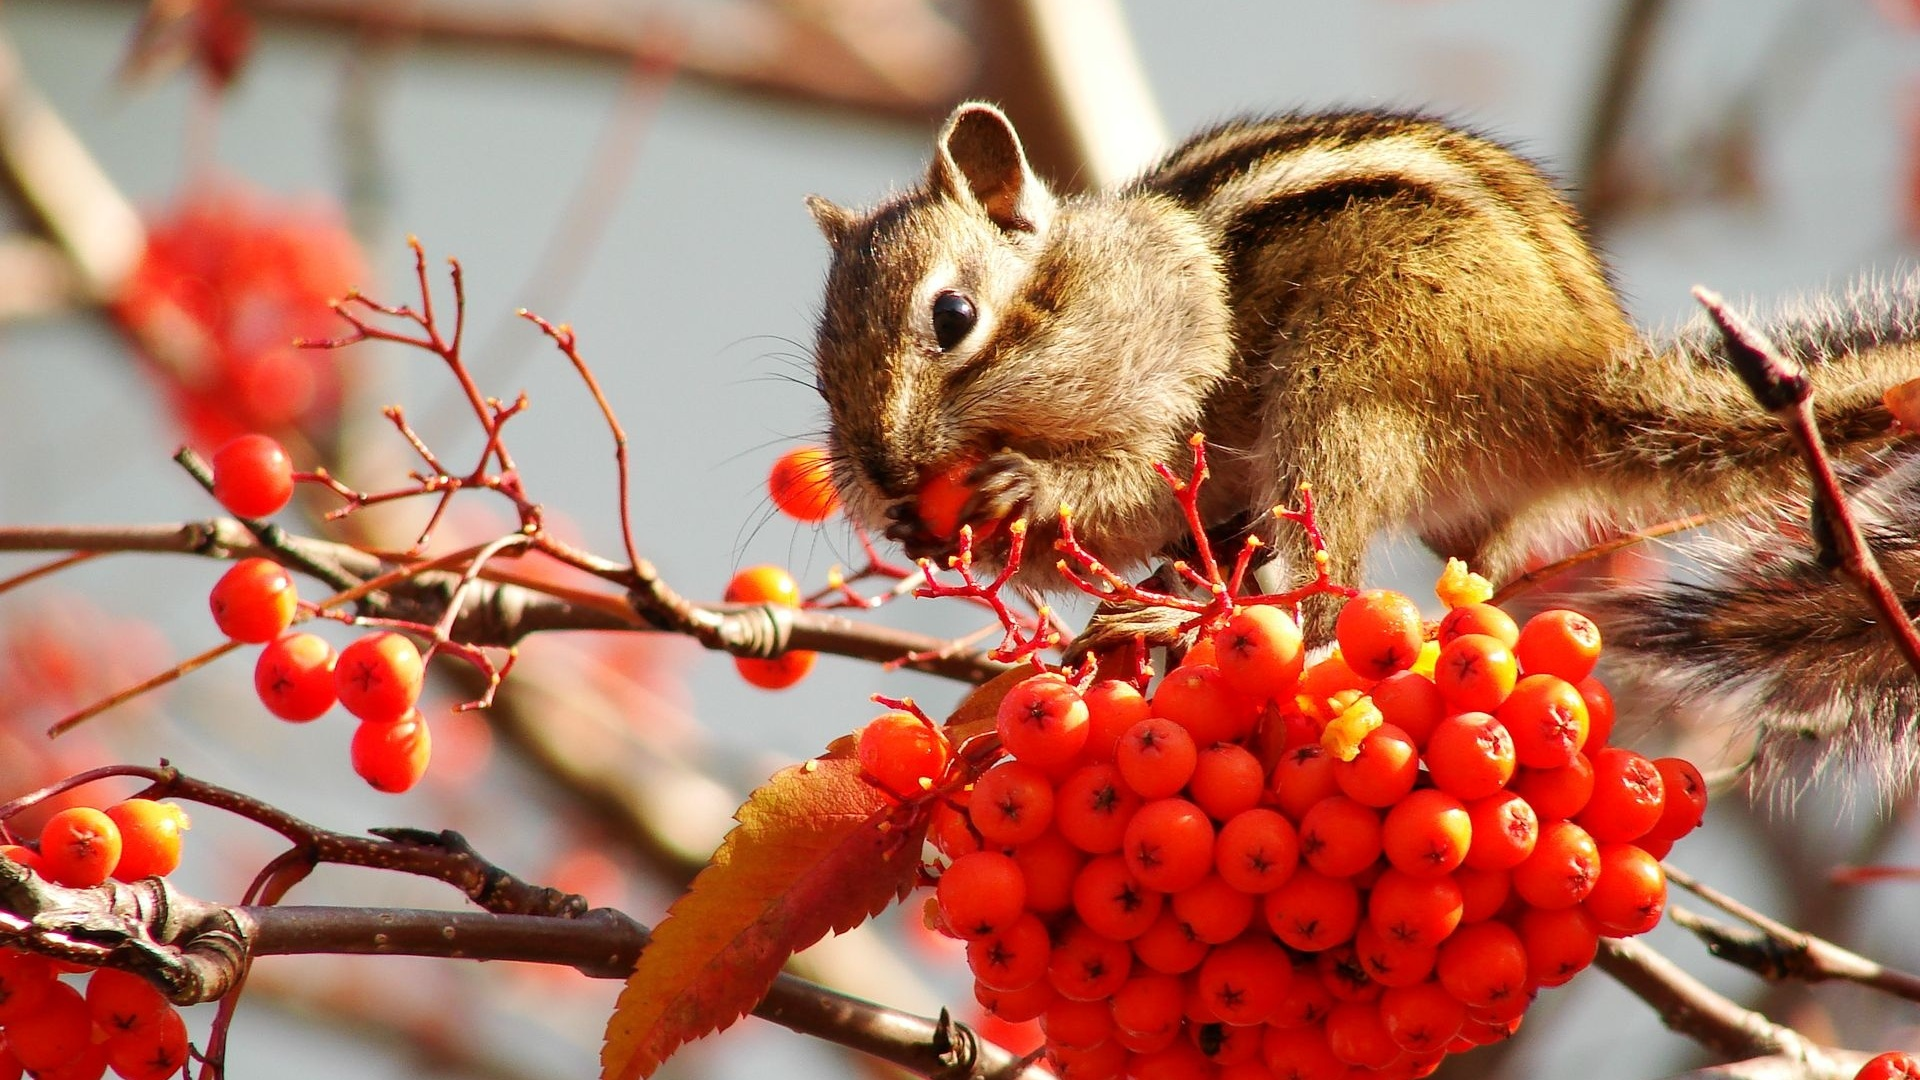 cute squirrel free background - photo #28